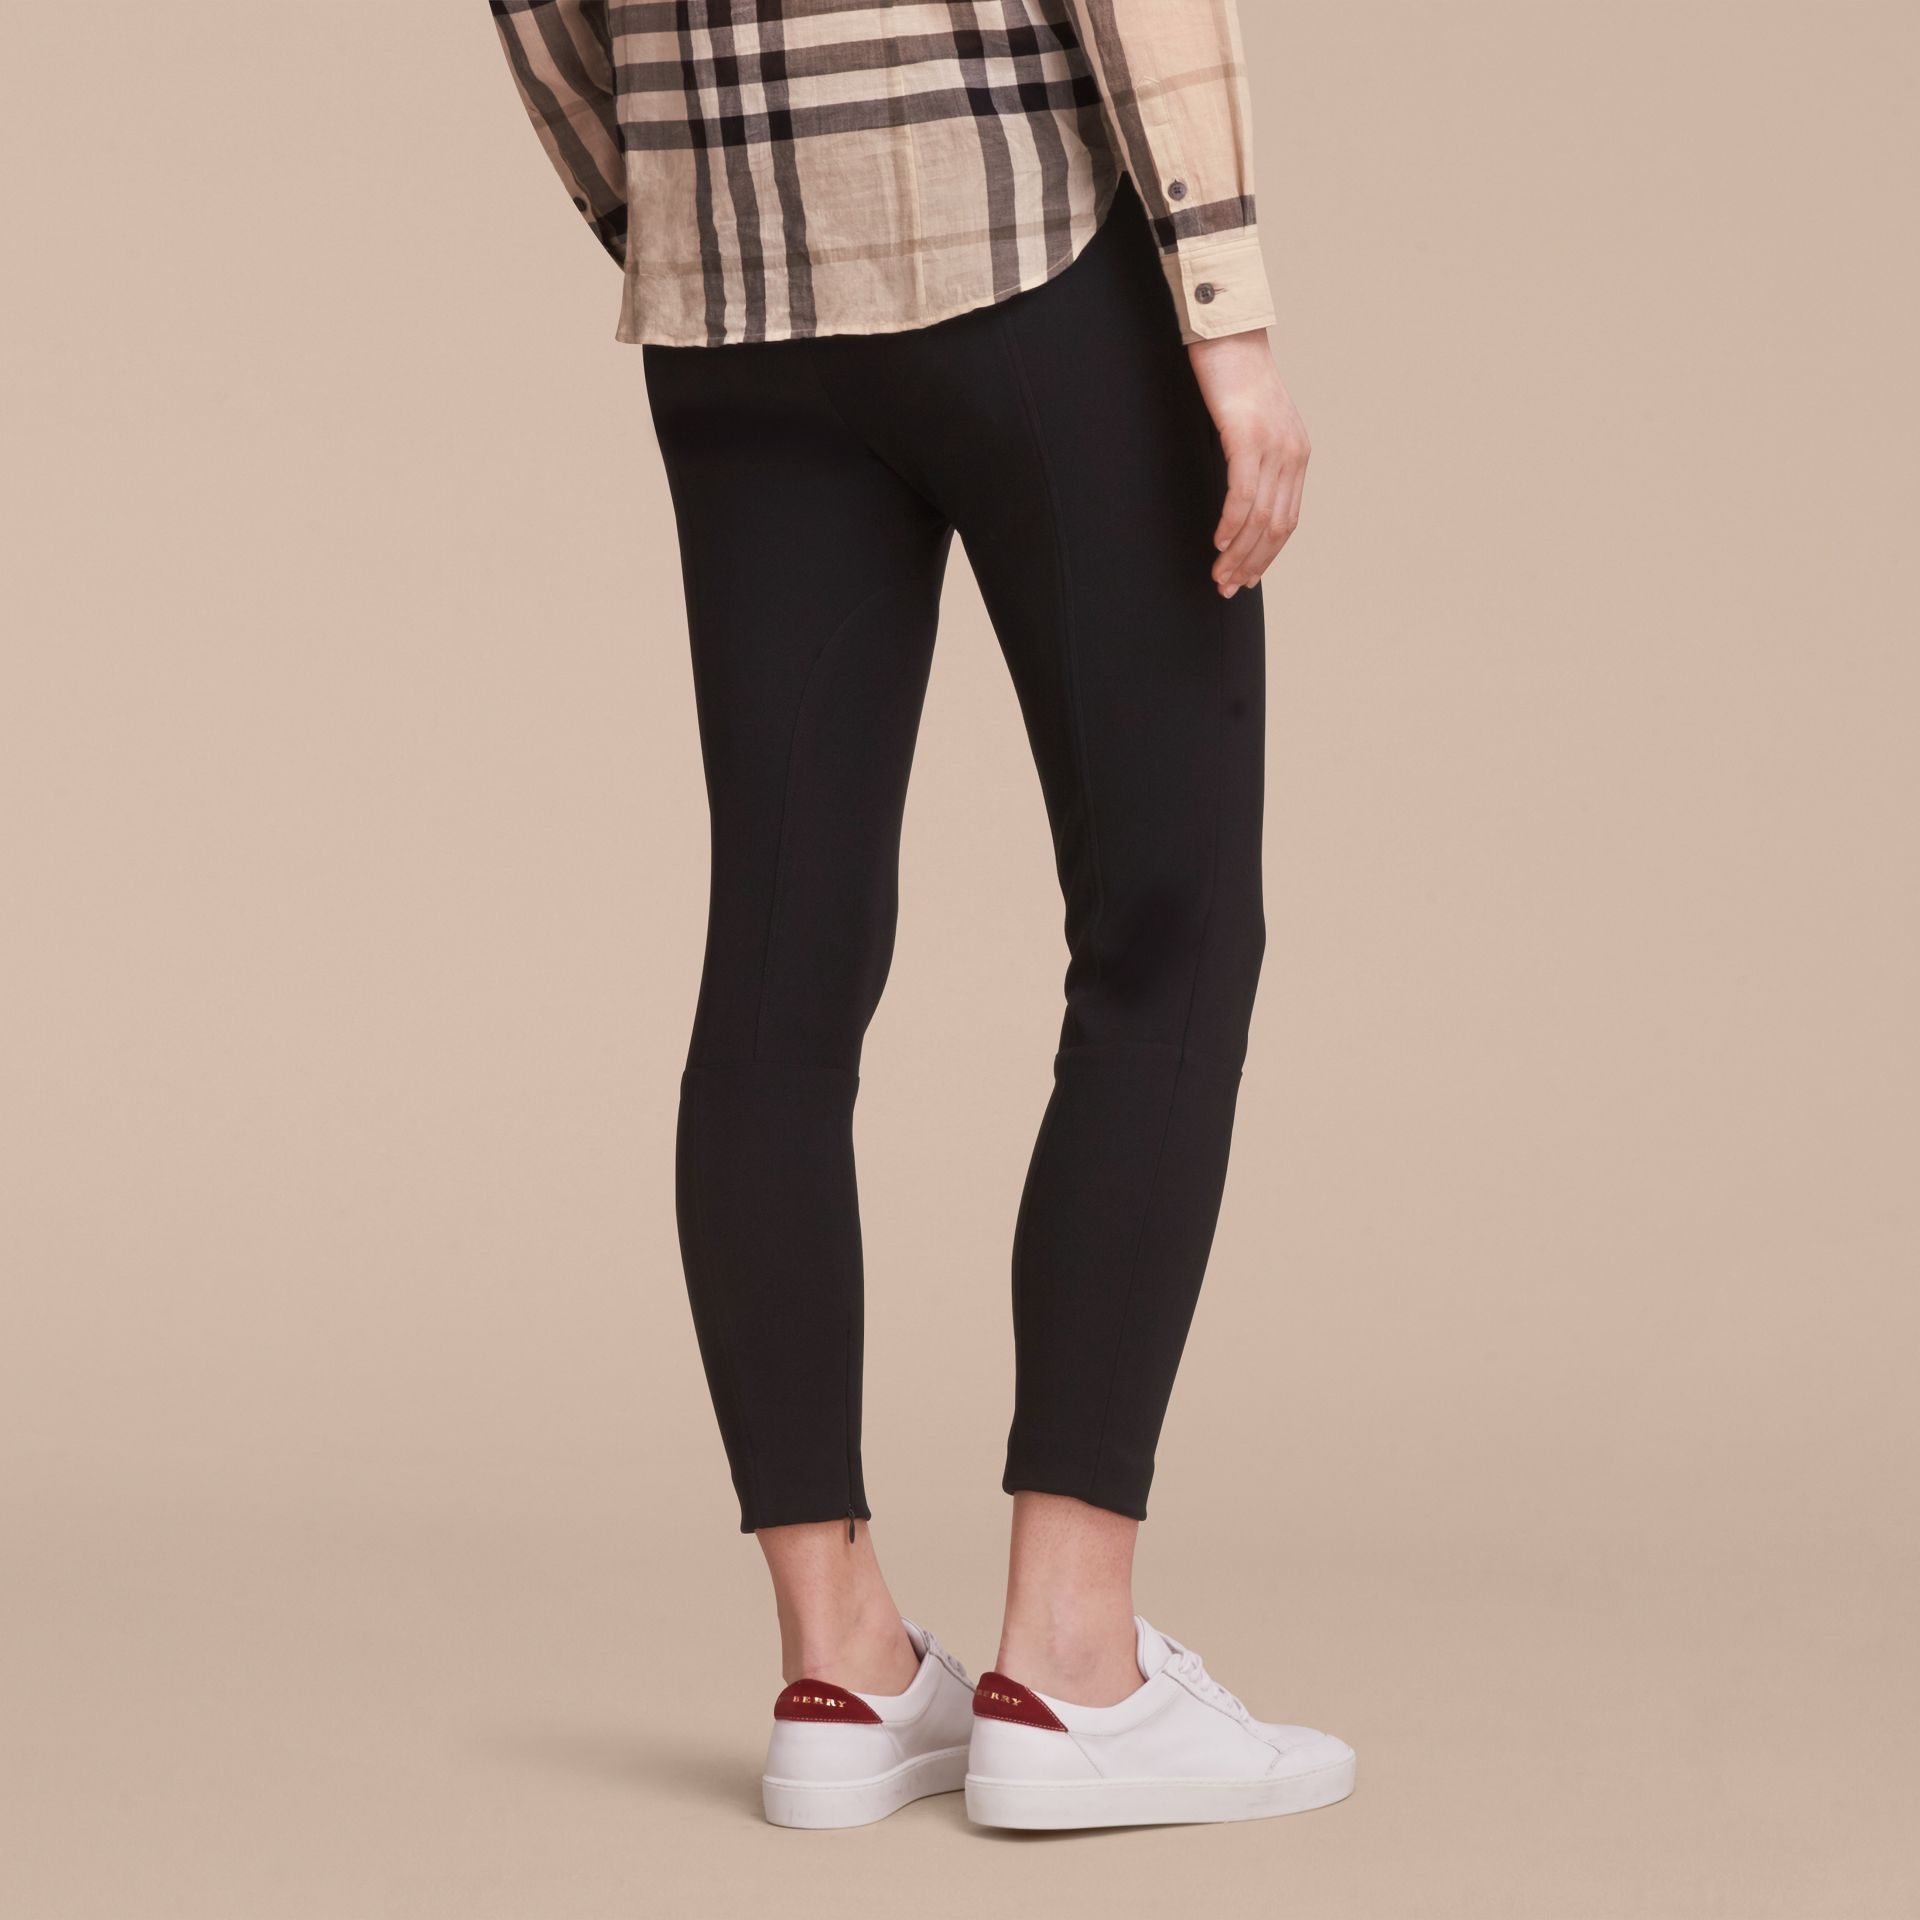 Cropped Slim Fit Trousers in Black - Women | Burberry - gallery image 2